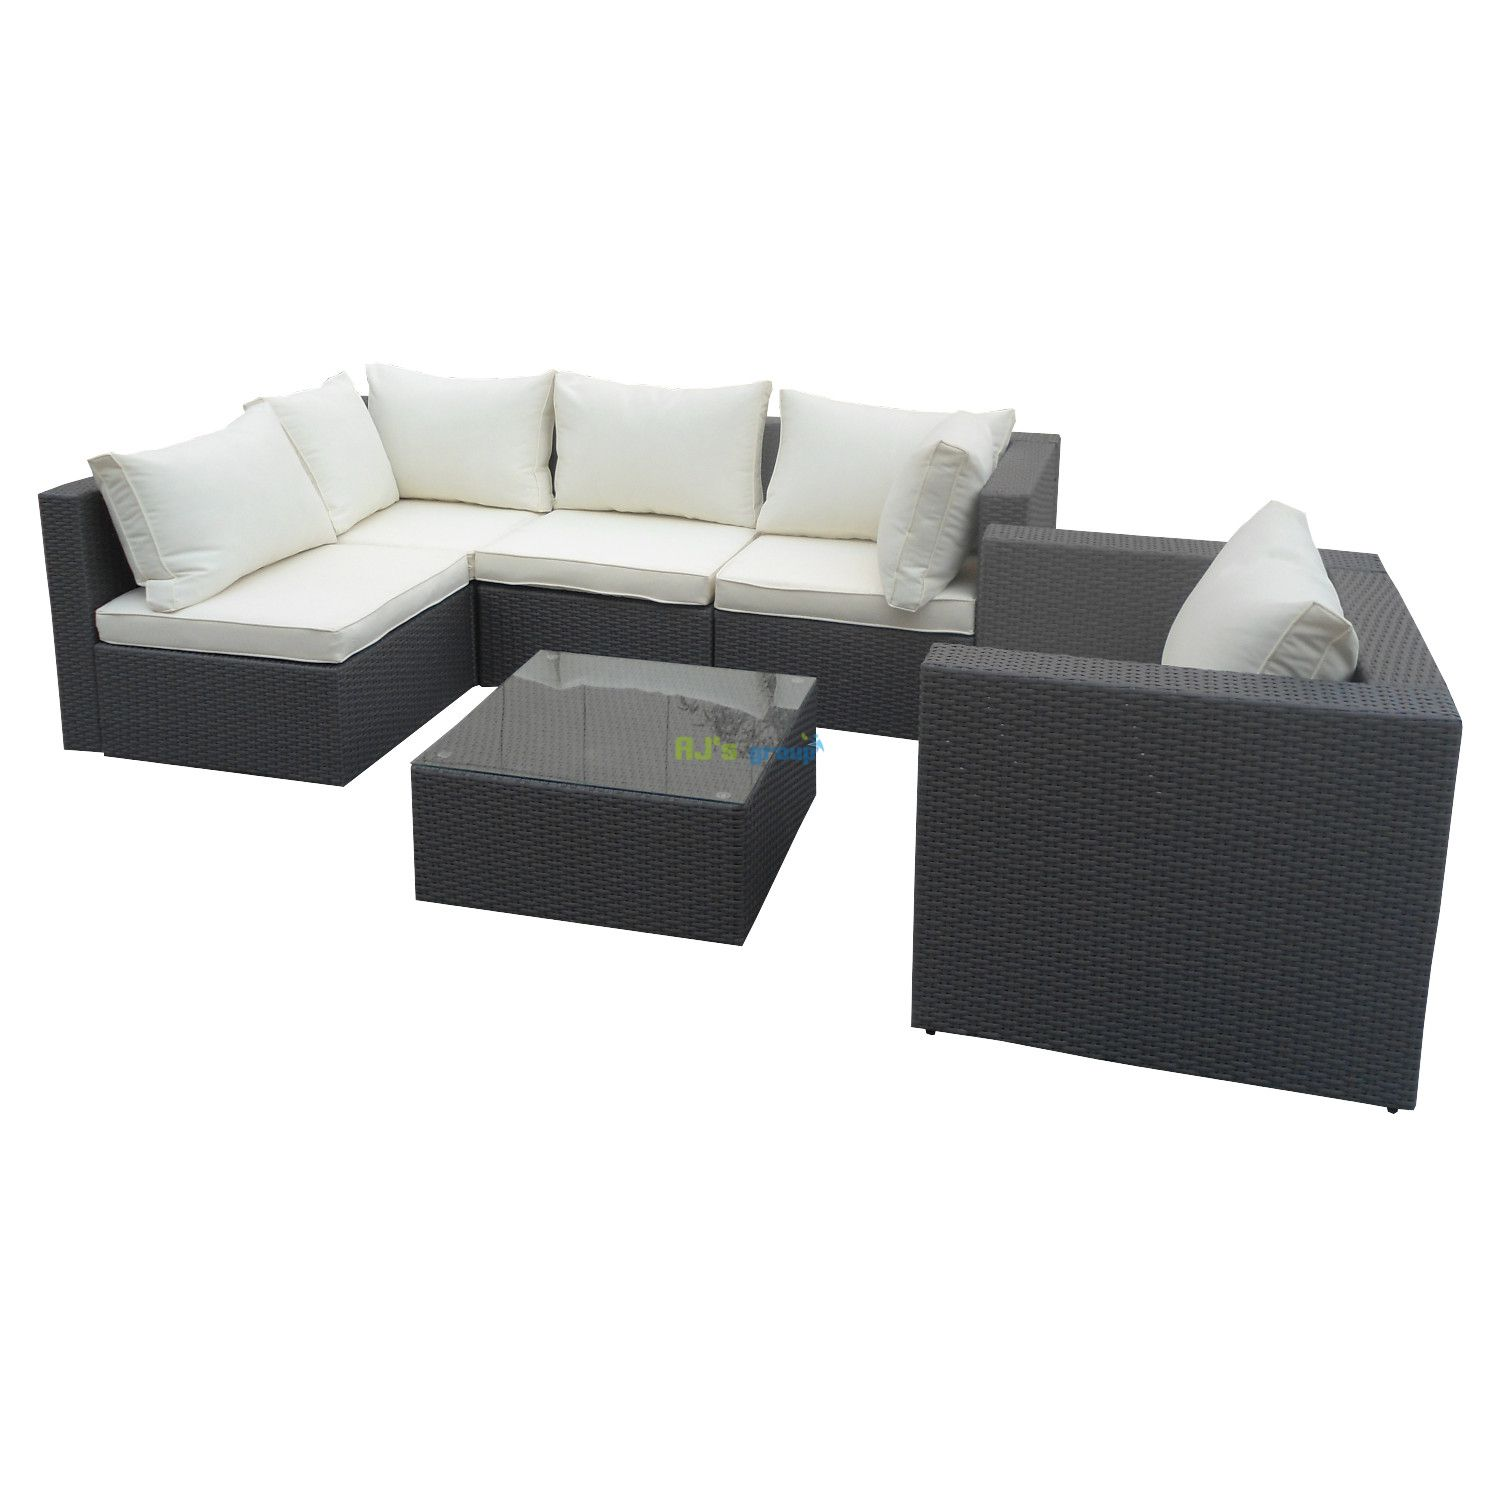 poly rattan gartenm bel jamaica alu garnitur lounge garten. Black Bedroom Furniture Sets. Home Design Ideas